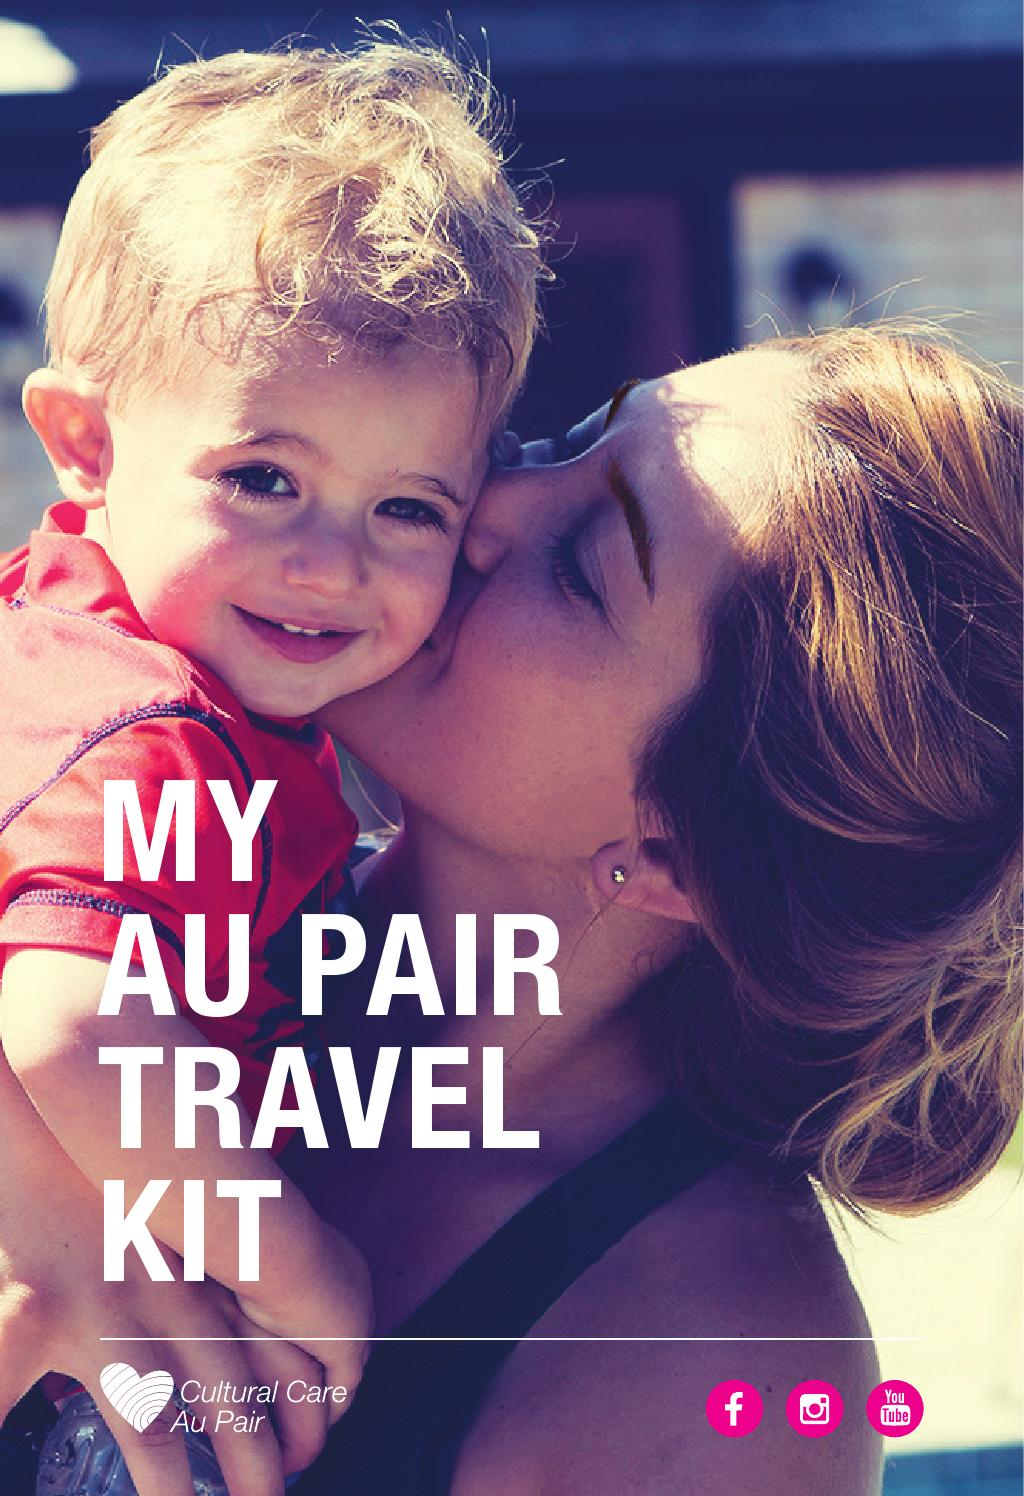 The Au-Pair Society e.V. is a member of the International Au Pair Association (IAPA) and is also in a committee ECAPS (European Committee for Au-Pair Standards) where members of National Organisation from several European countries have defined new Standards for Au-Pair .